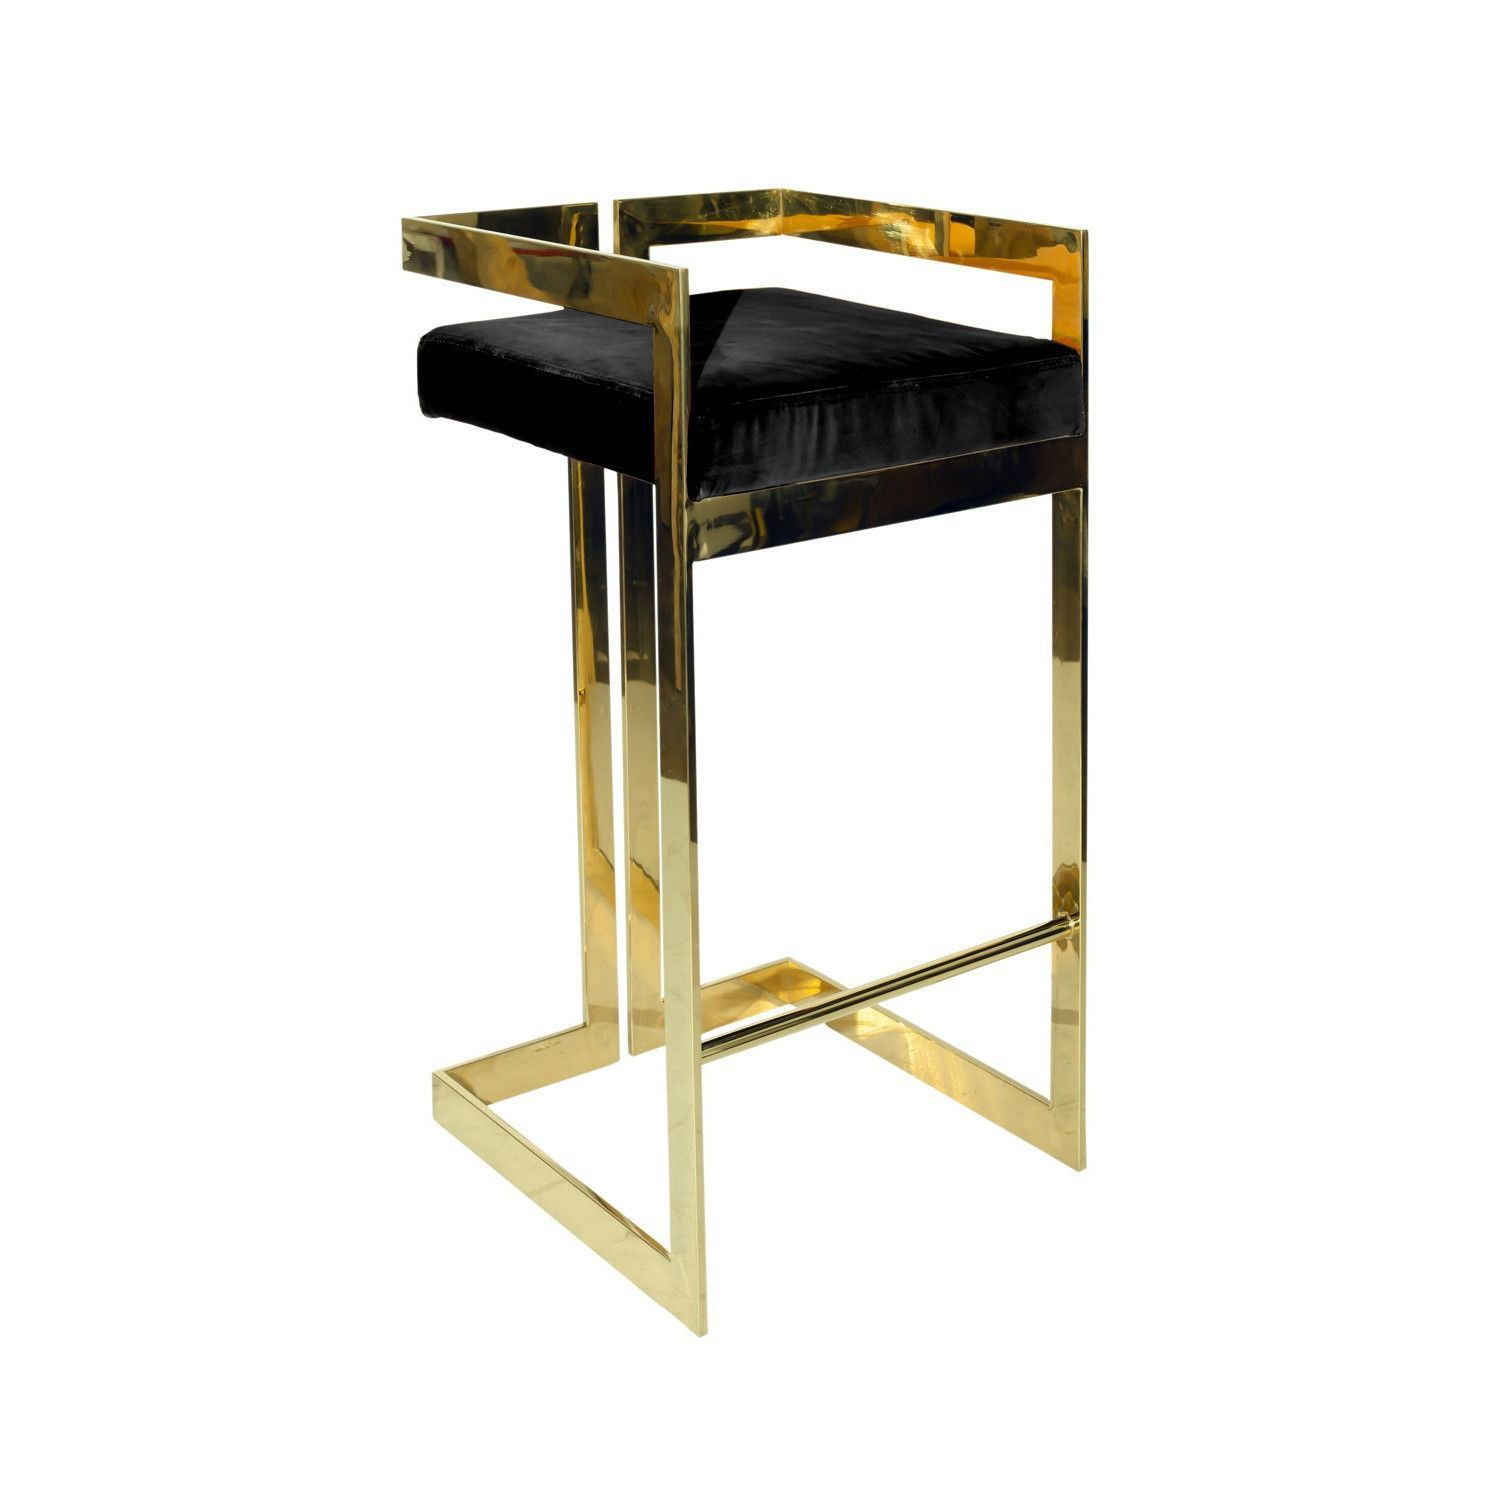 Solid Stainless Steel Bar Stool With Polished Gold Finish And Black Velvet  Cushion. Also Available In White.   Only Available In BAR HEIGHT.